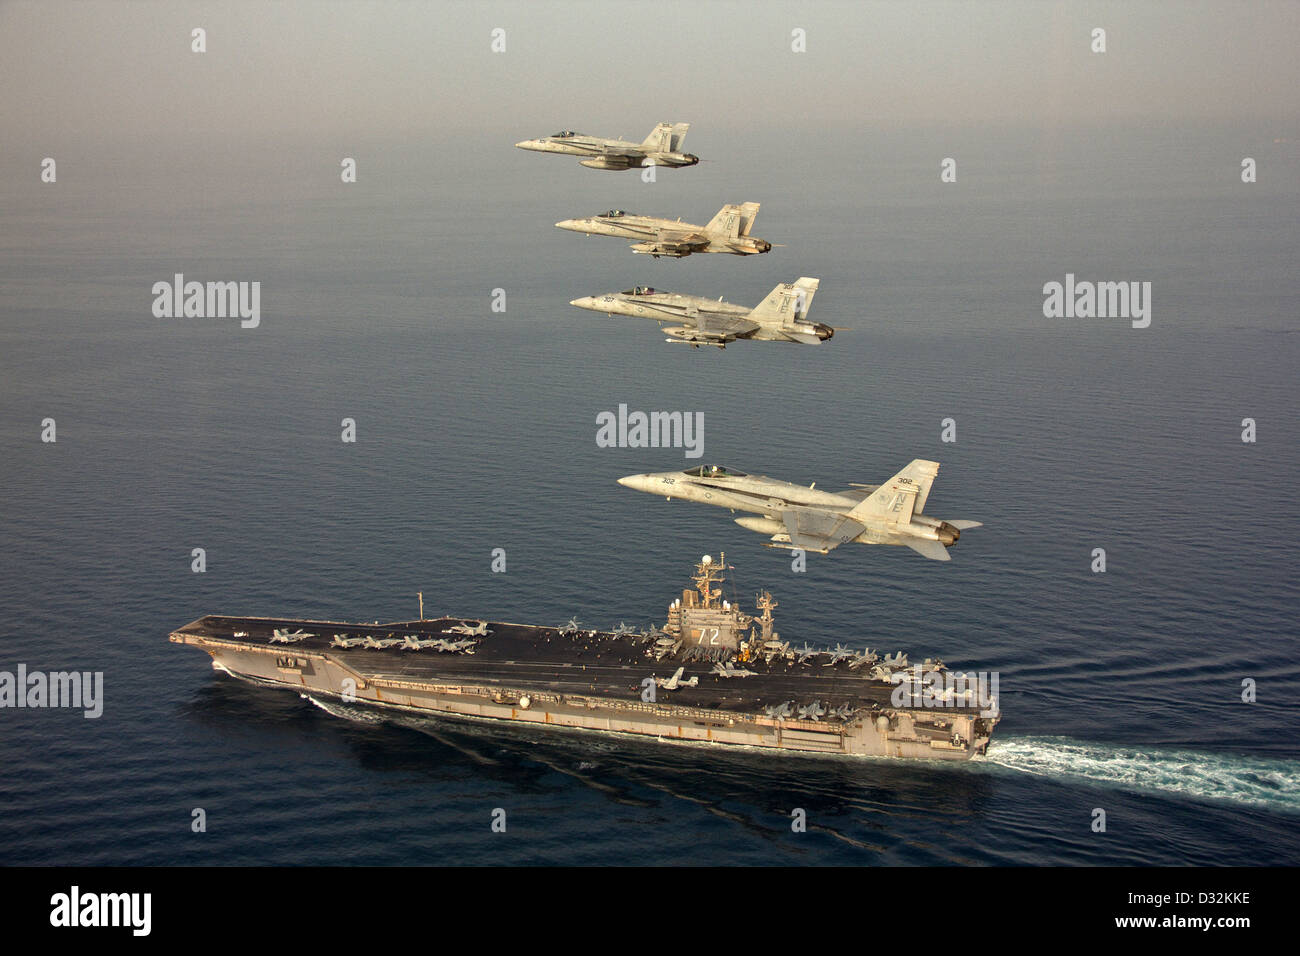 Nimitz-class aircraft carrier USS Abraham Lincoln (CVN 72) - Stock Image